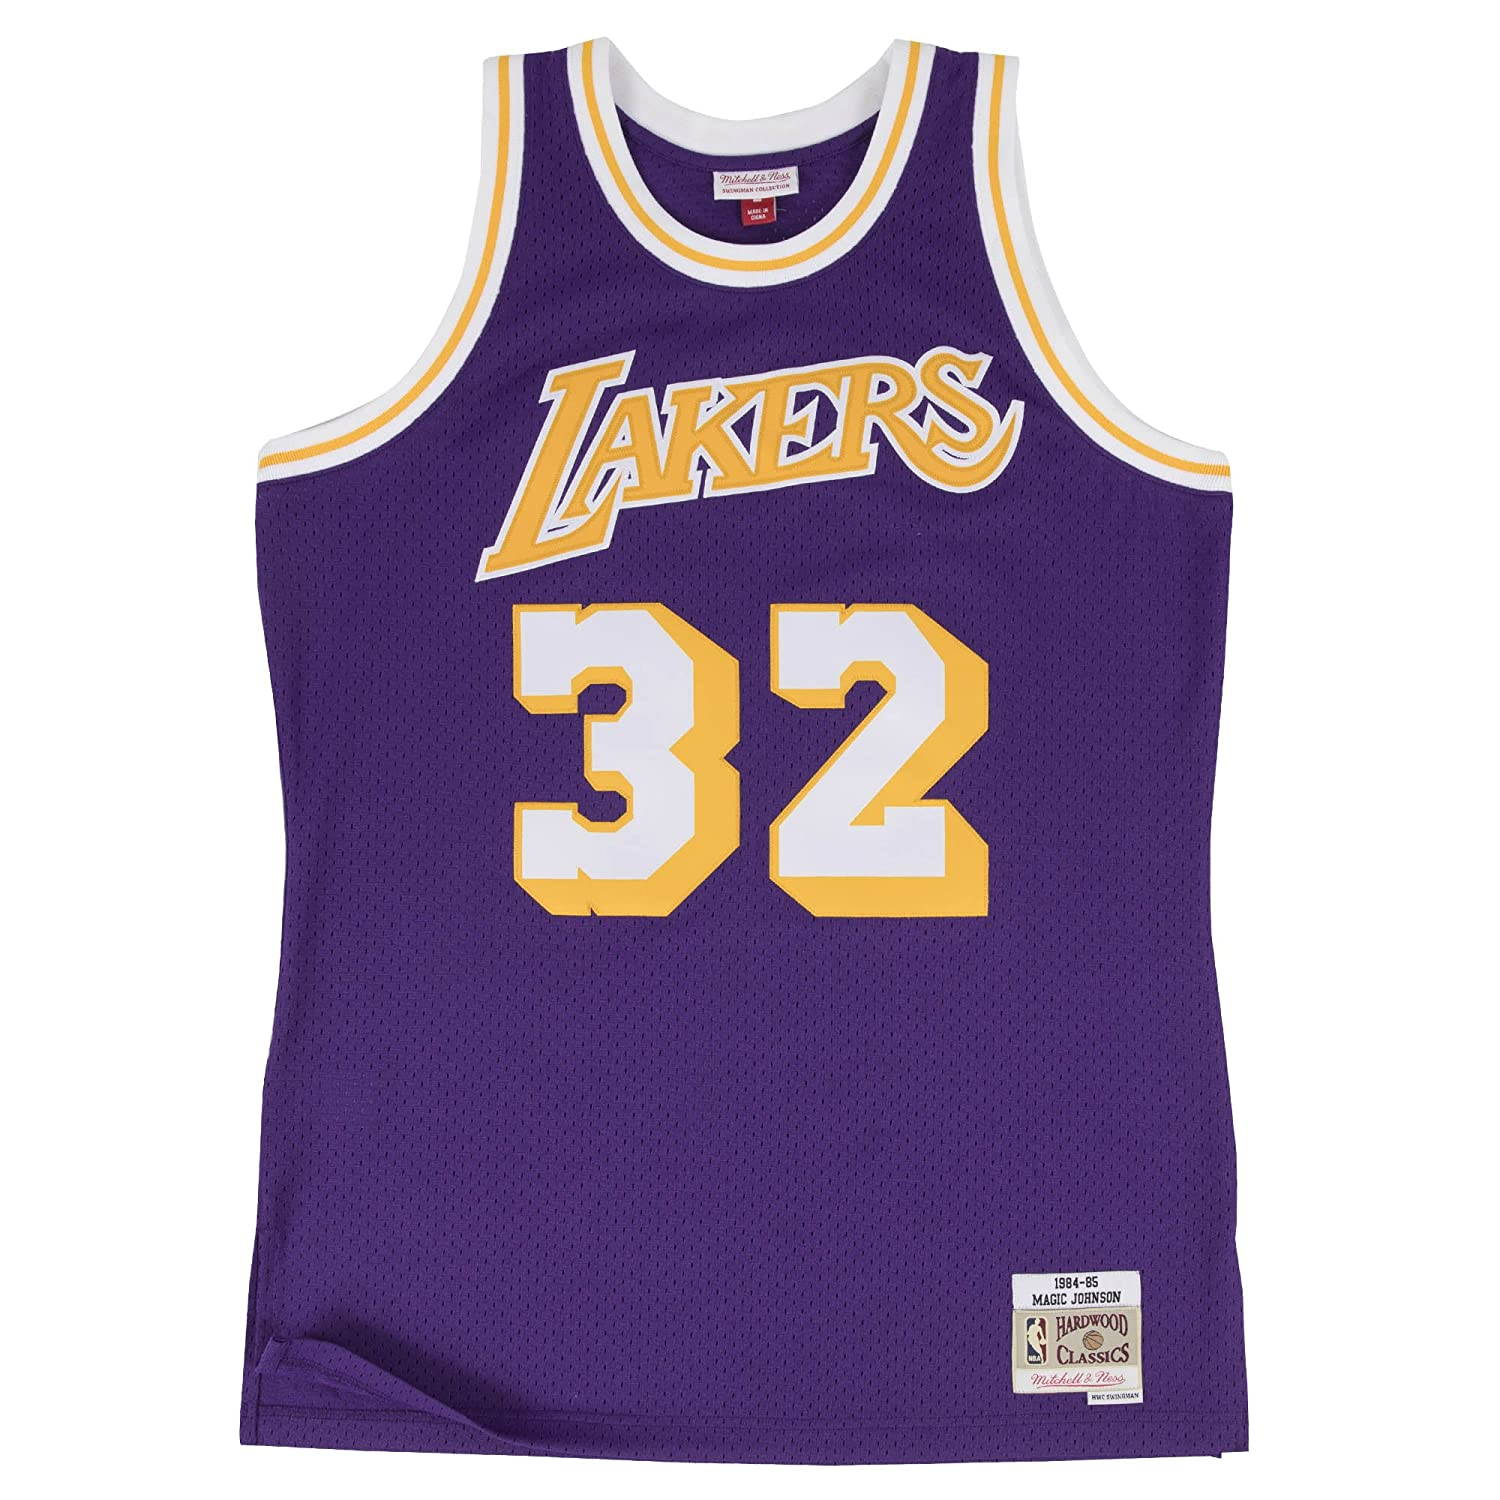 07ccf27bf92 Amazon.com   Mitchell   Ness Los Angeles Lakers Mens Jersey 32 Magic  Johnson Swingman Purple   Clothing